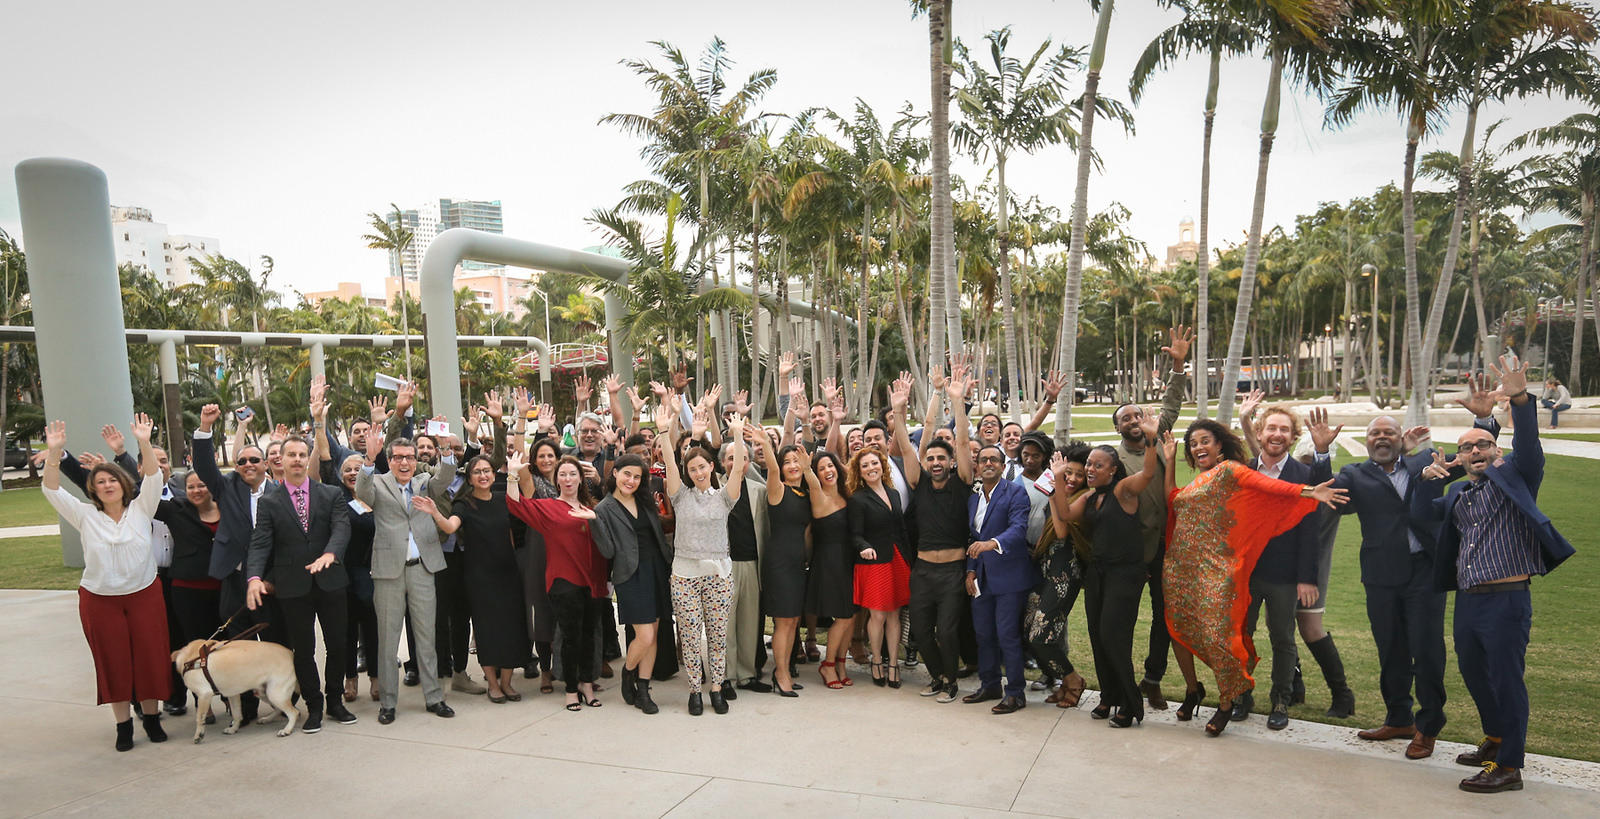 knight arts challenge winners get 2 78 m to make south florida a winners of the 2016 edition of the south florida knight arts challenge